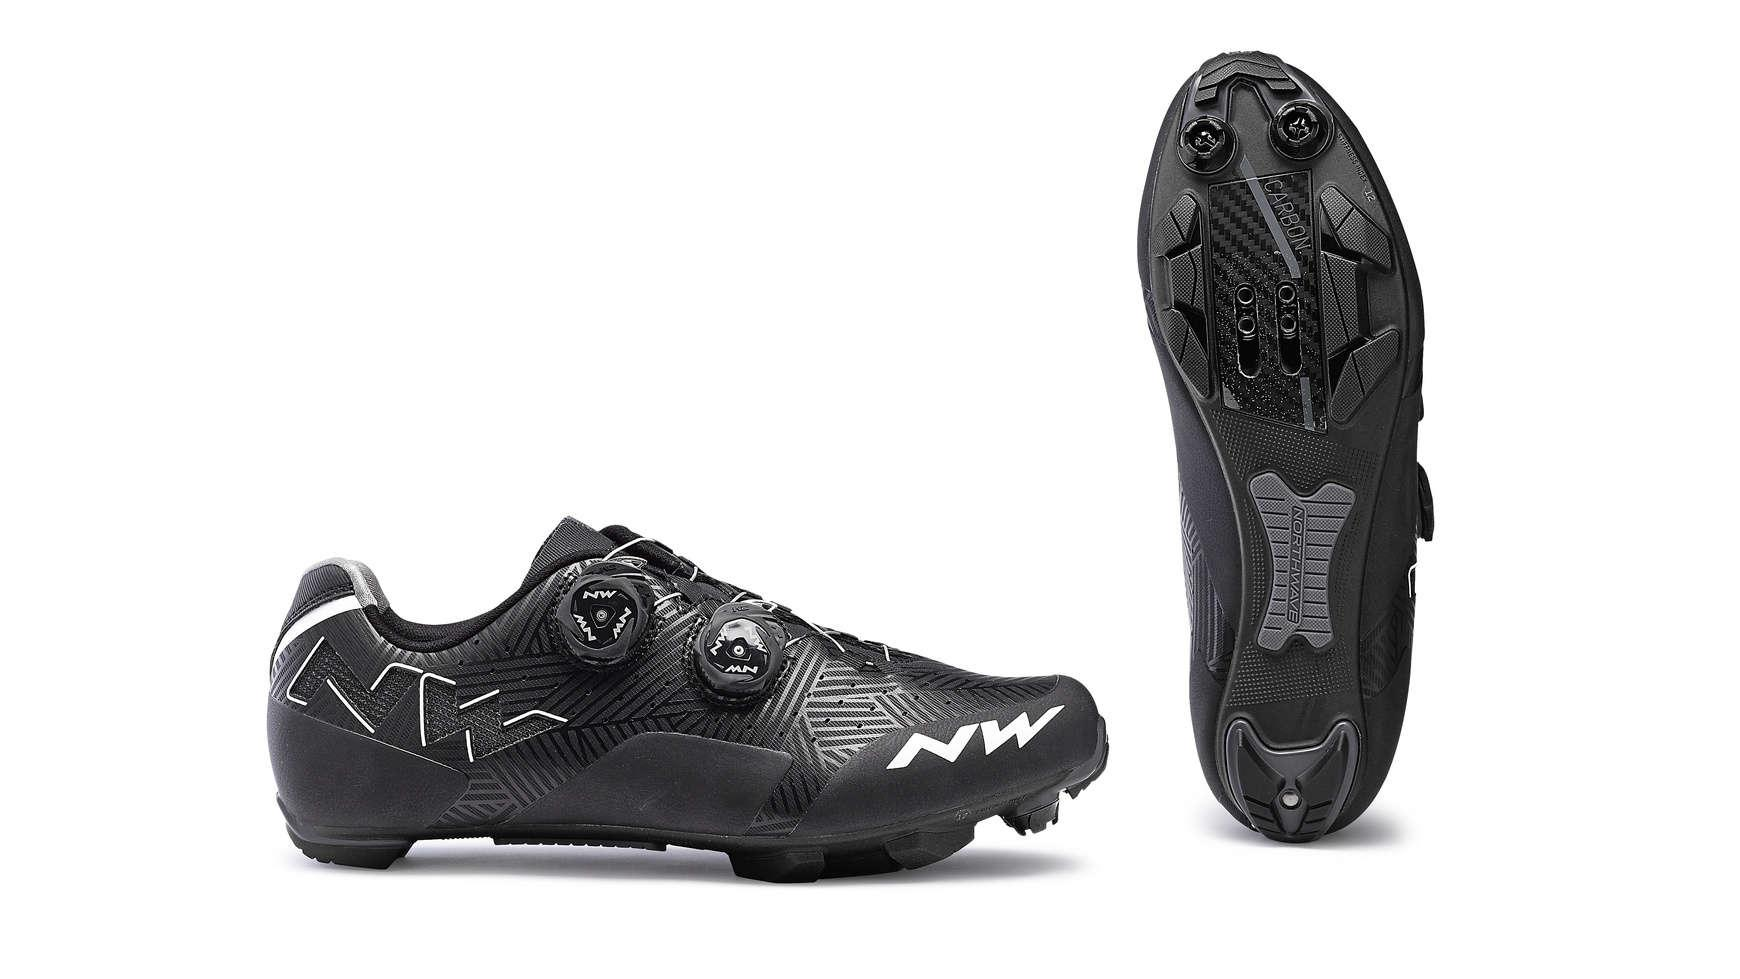 Afbeelding Northwave Race fietsschoenen Dames Zwart Wit /  REBEL WOMAN BLACK/WHITE